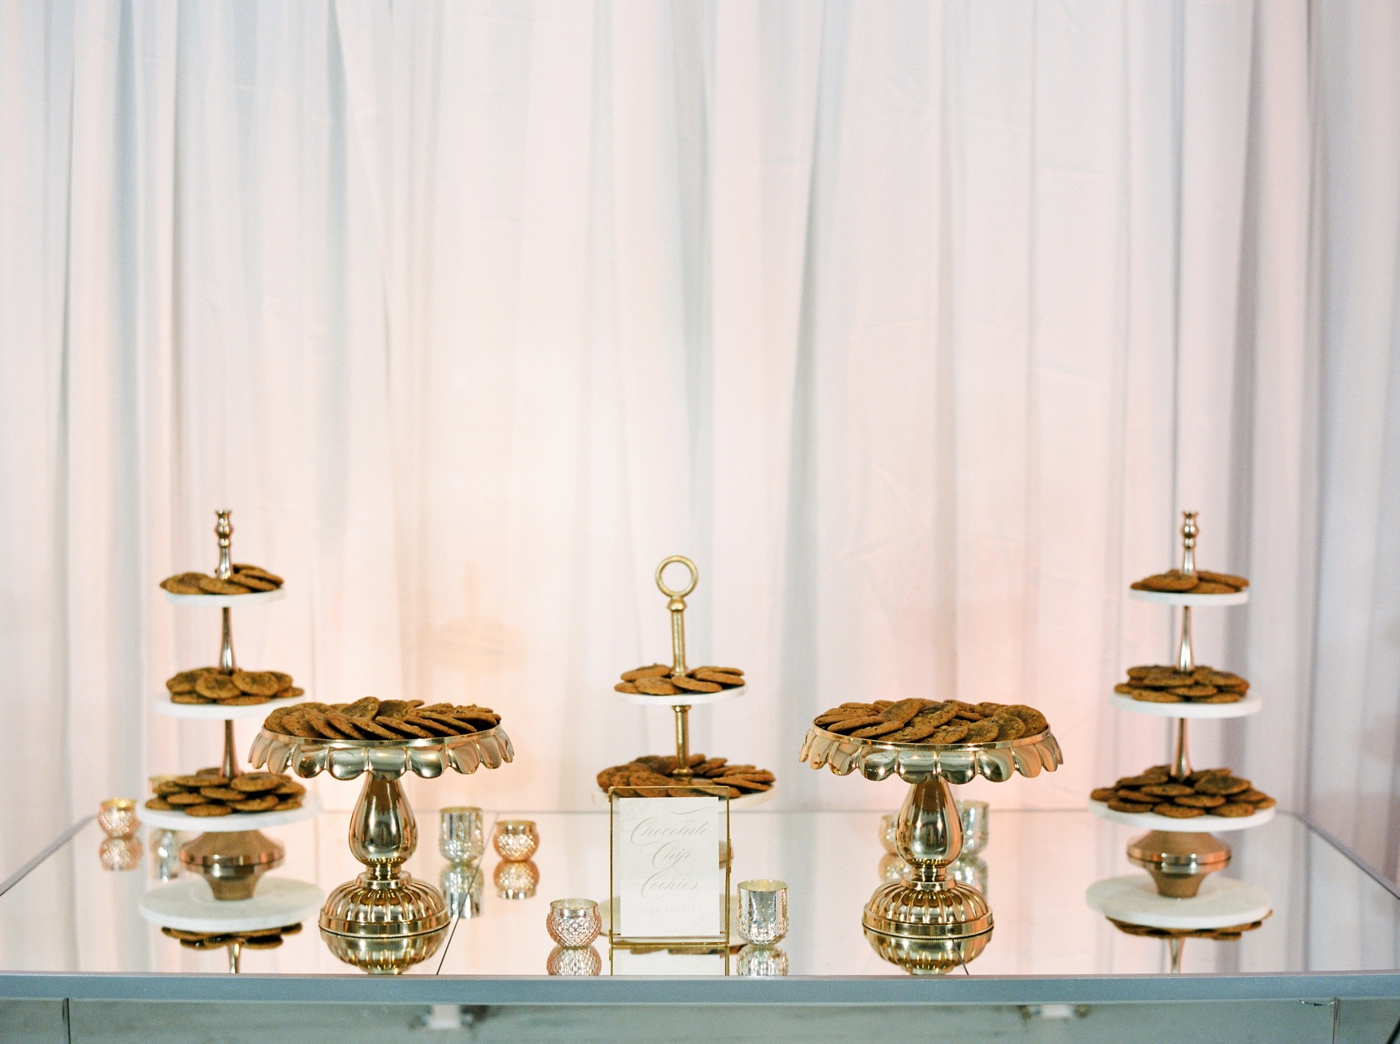 calgary wedding photographers | Ukrainian wedding | justine milton fine art photographer | wedding reception decor airplane museum julianne young weddings | cookie bar